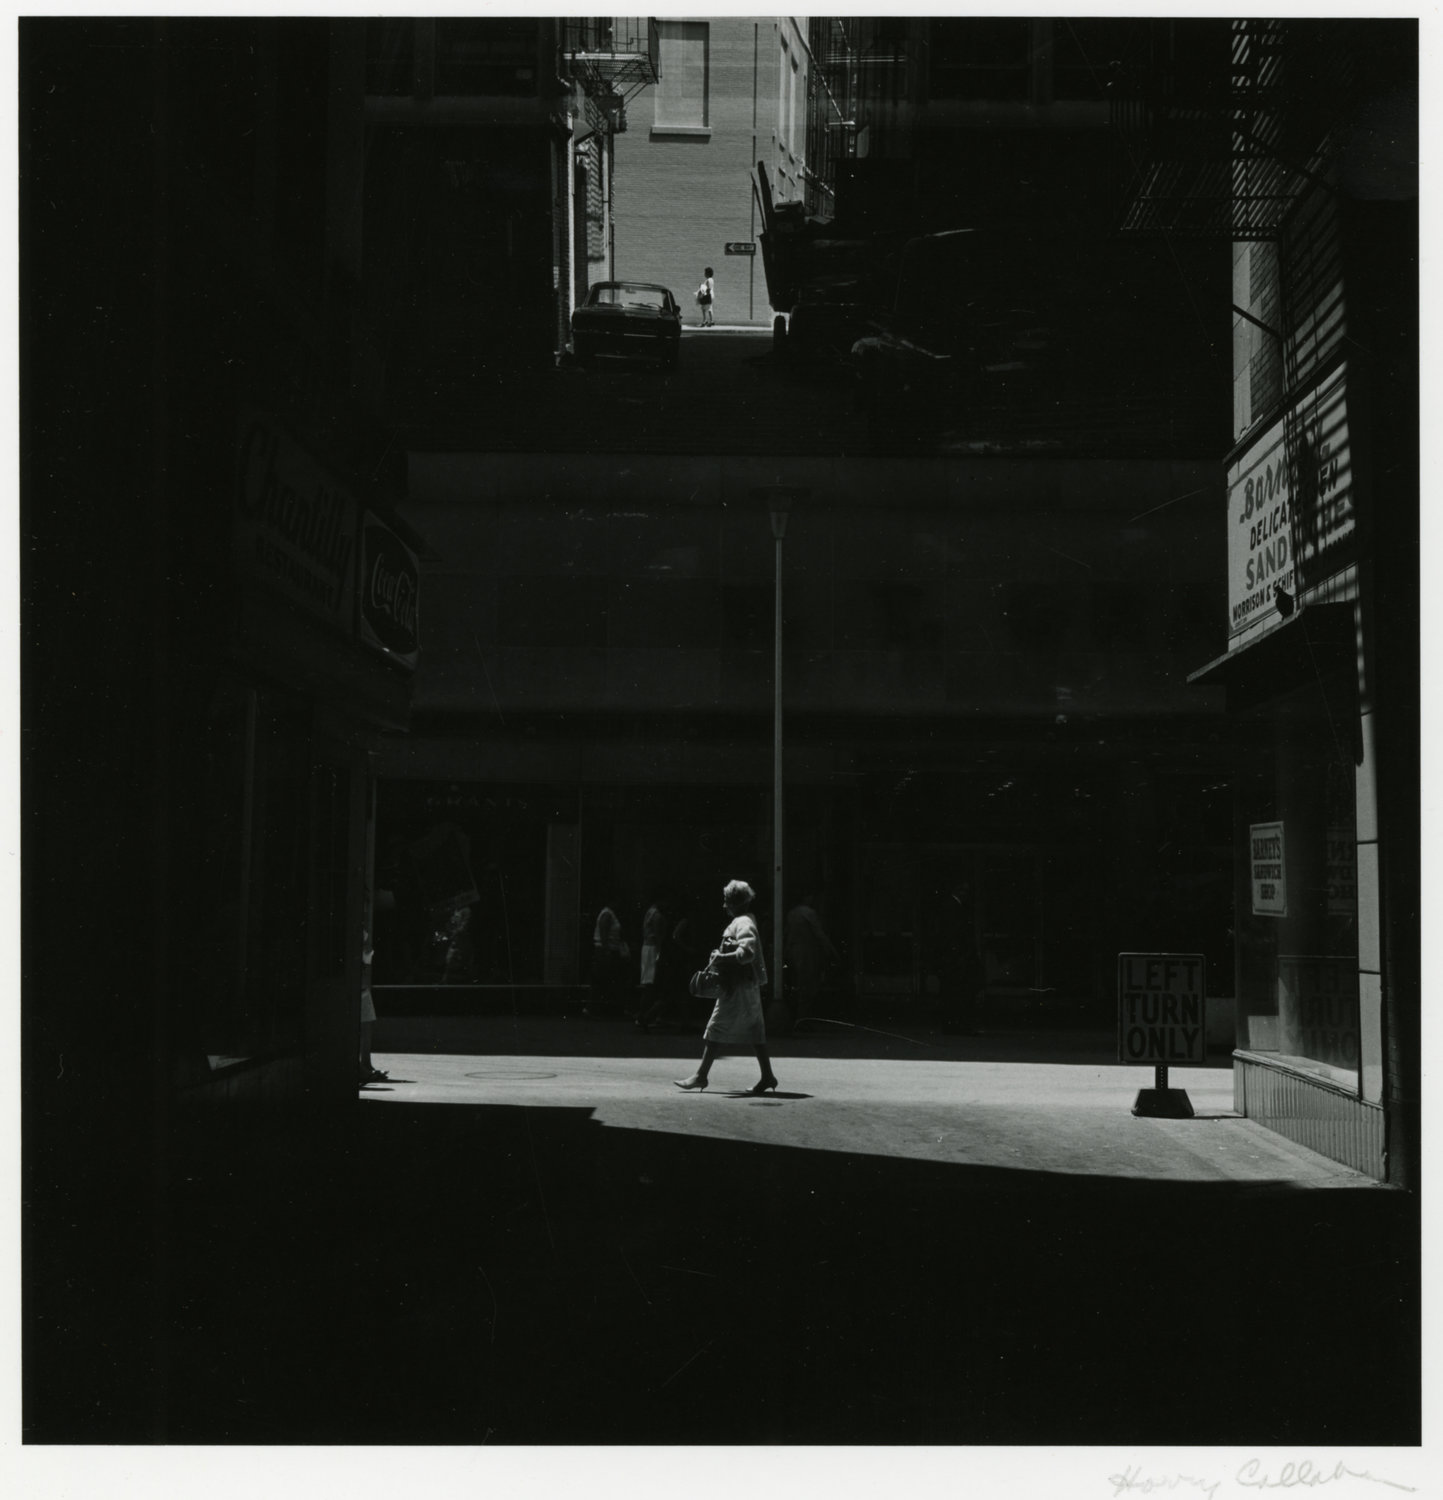 The Providence Album, Vol I: Carmel Vitullo and Harry Callahan showcases stills of Providence in the 1960s